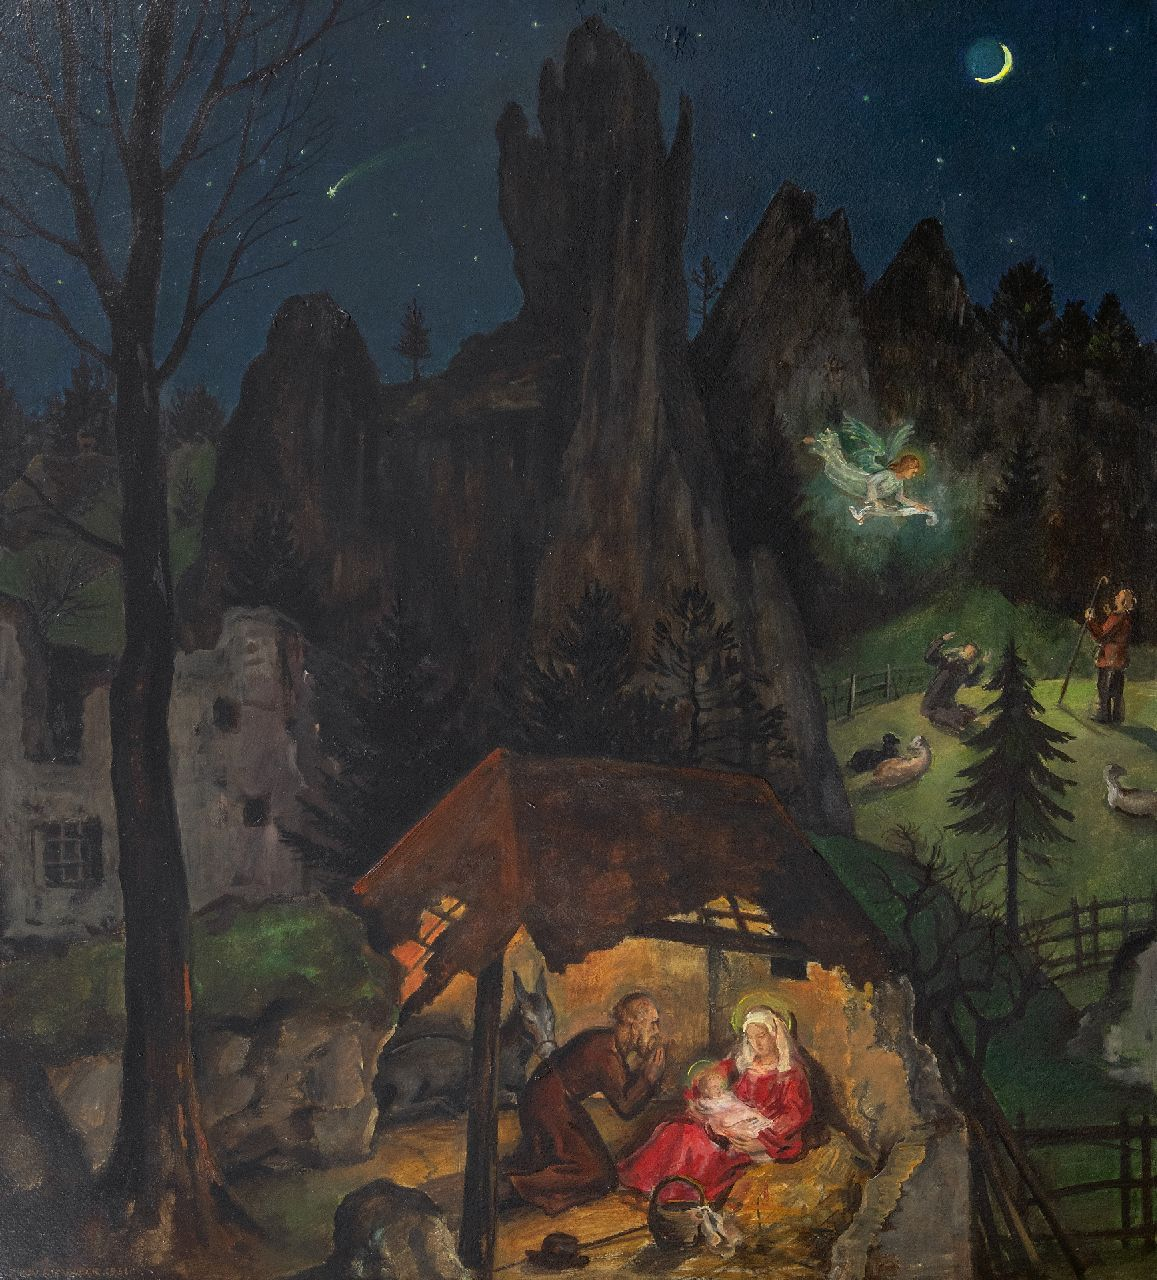 Rimböck M.  | Max Rimböck | Paintings offered for sale | The birth of Christ, oil on painter's board 73.5 x 66.0 cm, signed l.l. and dated 1931